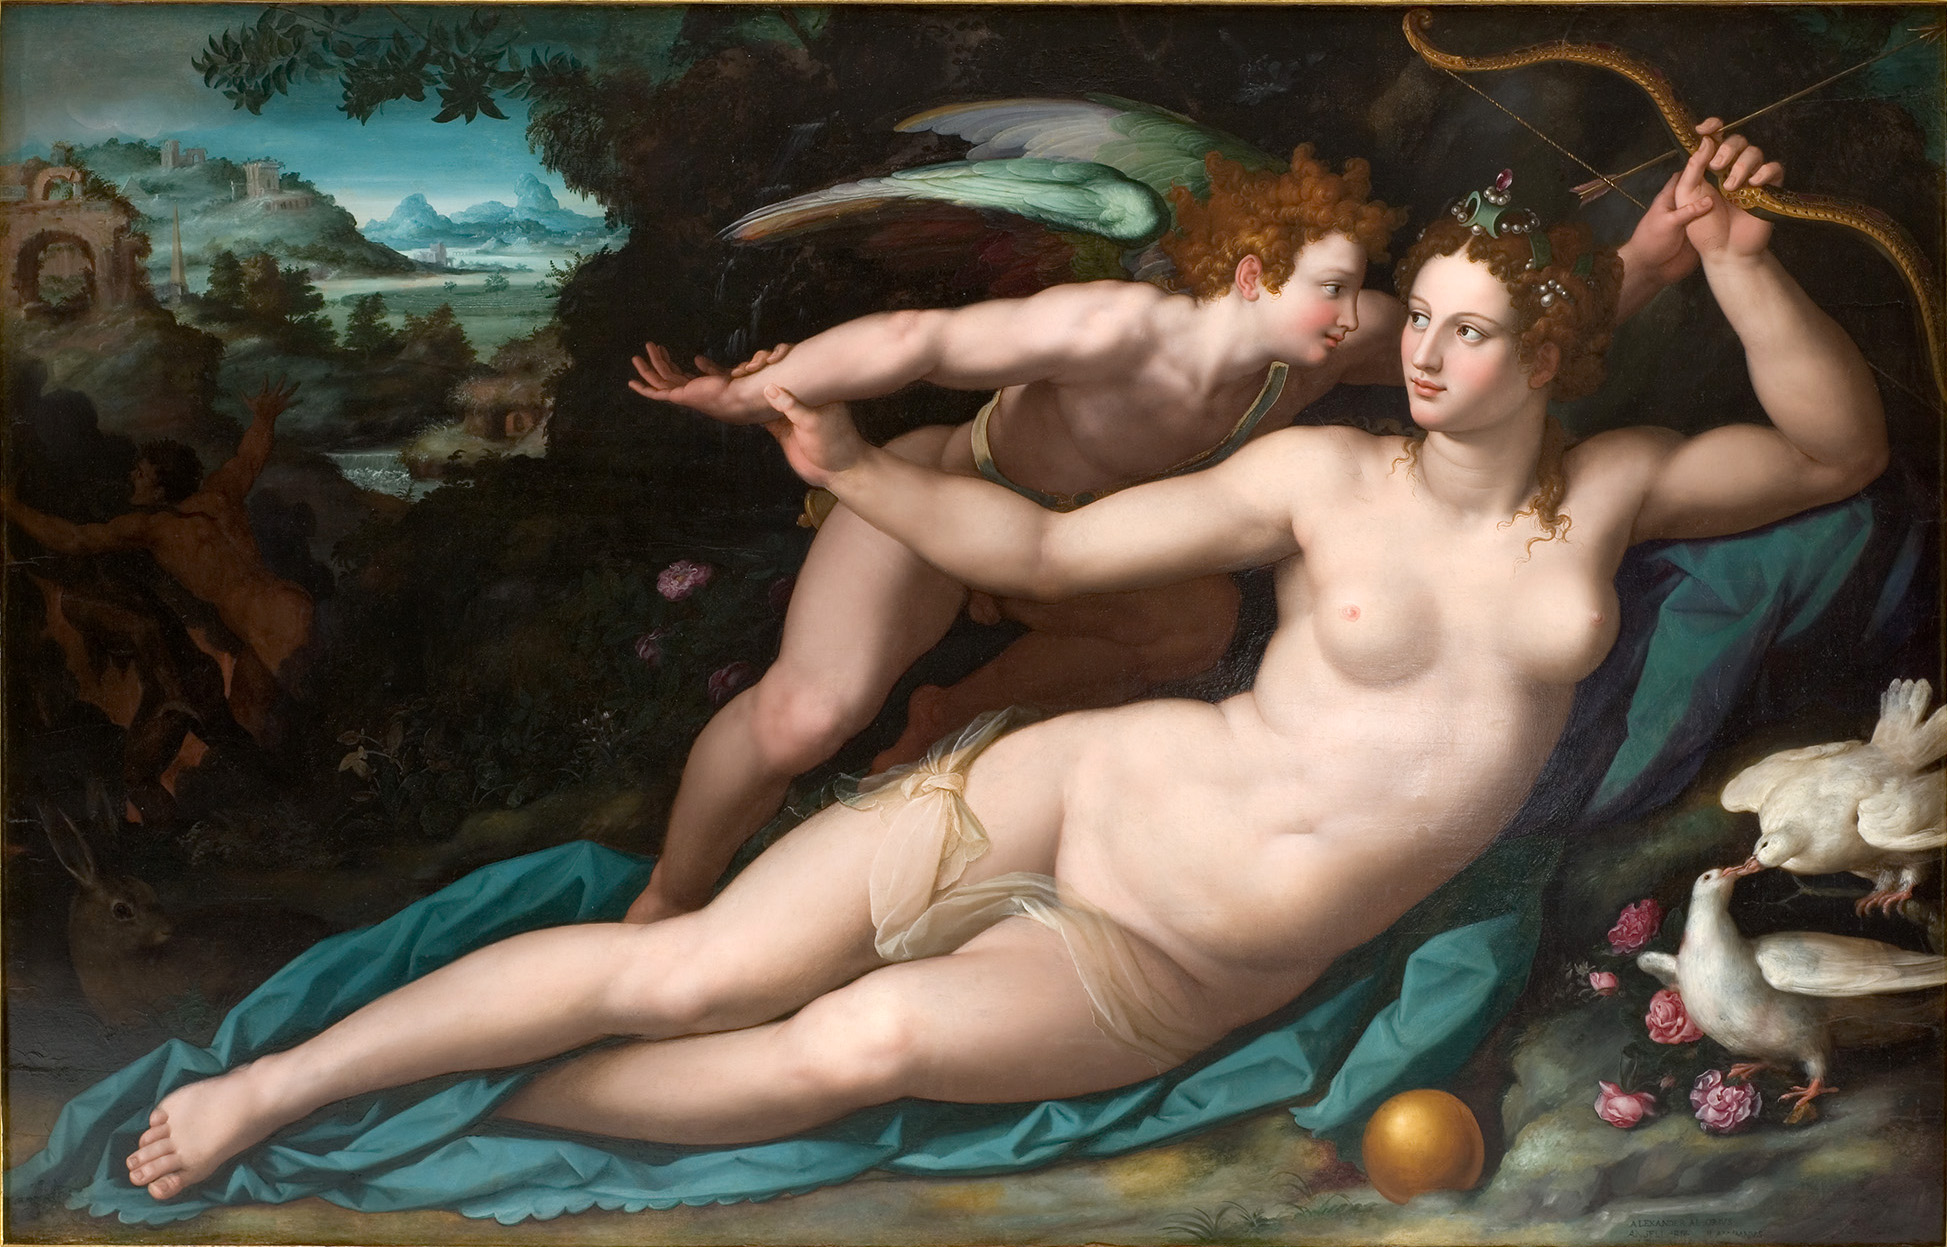 https://i2.wp.com/upload.wikimedia.org/wikipedia/commons/8/88/Allori_Venus_Cupido.jpg